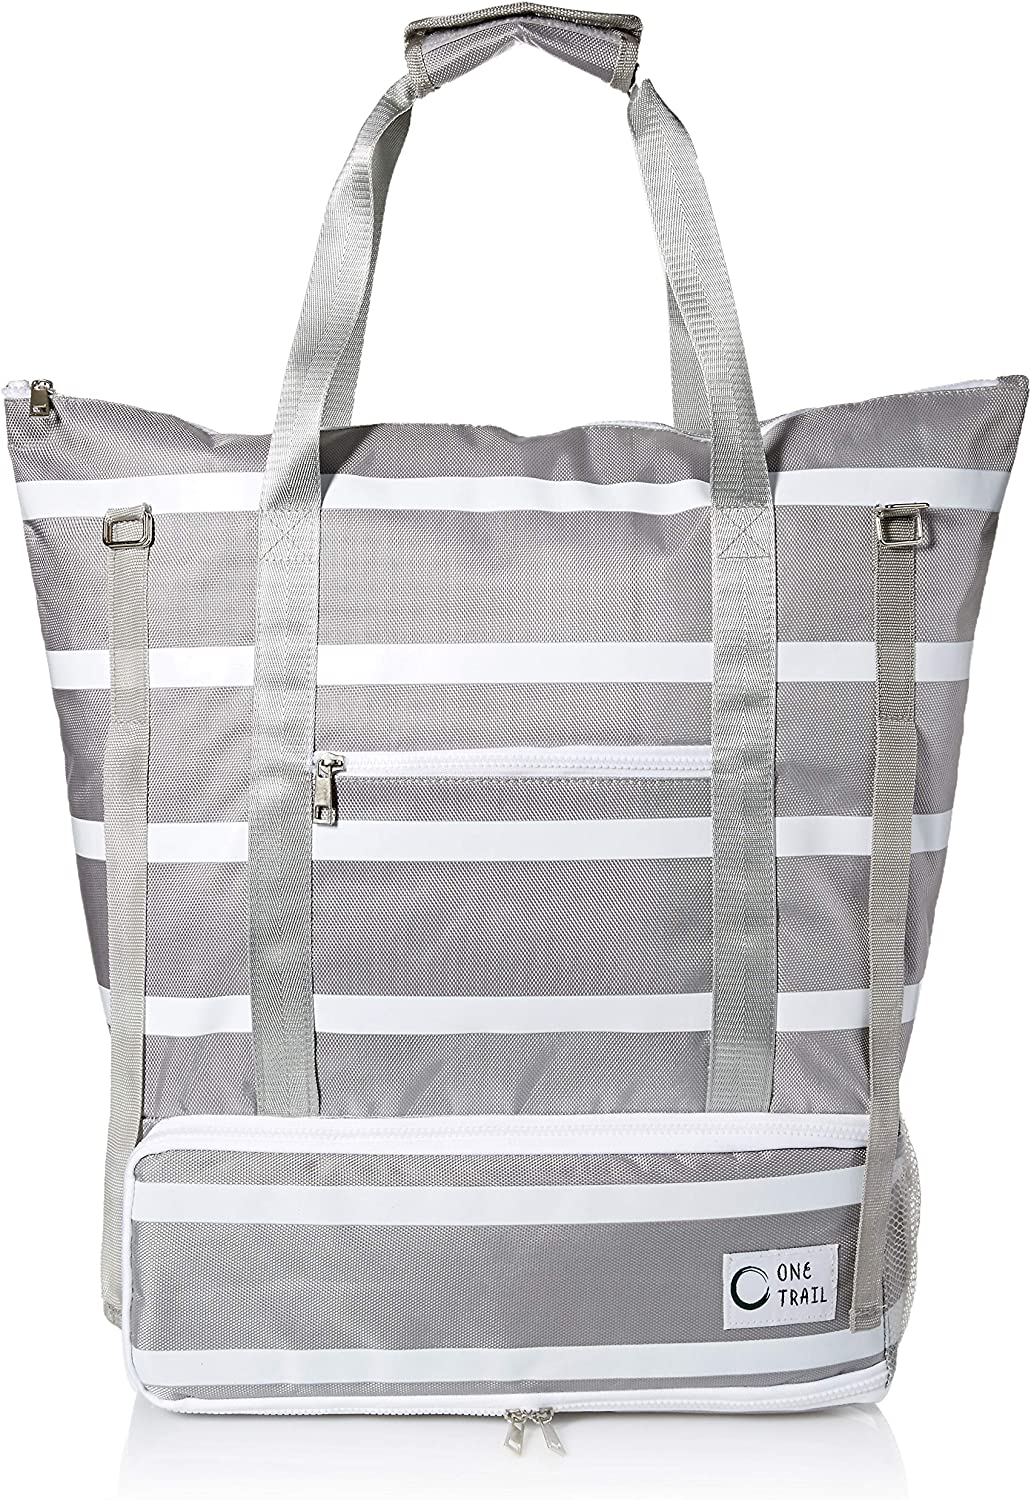 OneTrail Day-Tripper Cooler Tote Hybrid Cooler and Tote Bag-in-One Water Resistant and Wipeable Exterior Large Capacity